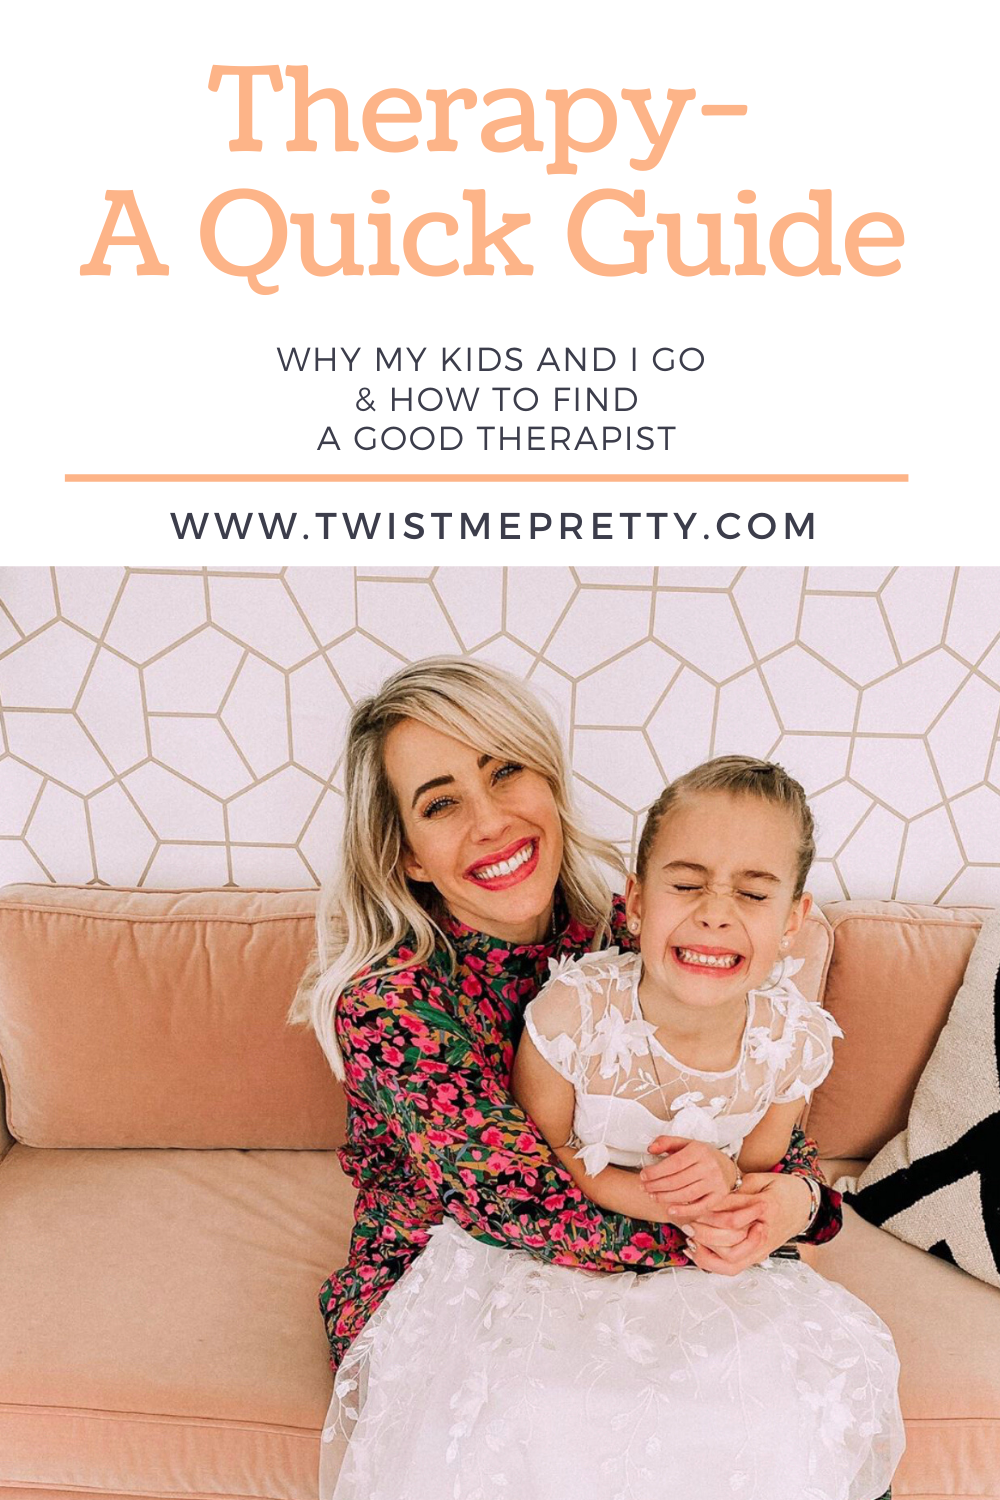 Therapy- A quick guide. Why my kids and I go, & how to find a good therapist. www.TwistMePretty.com